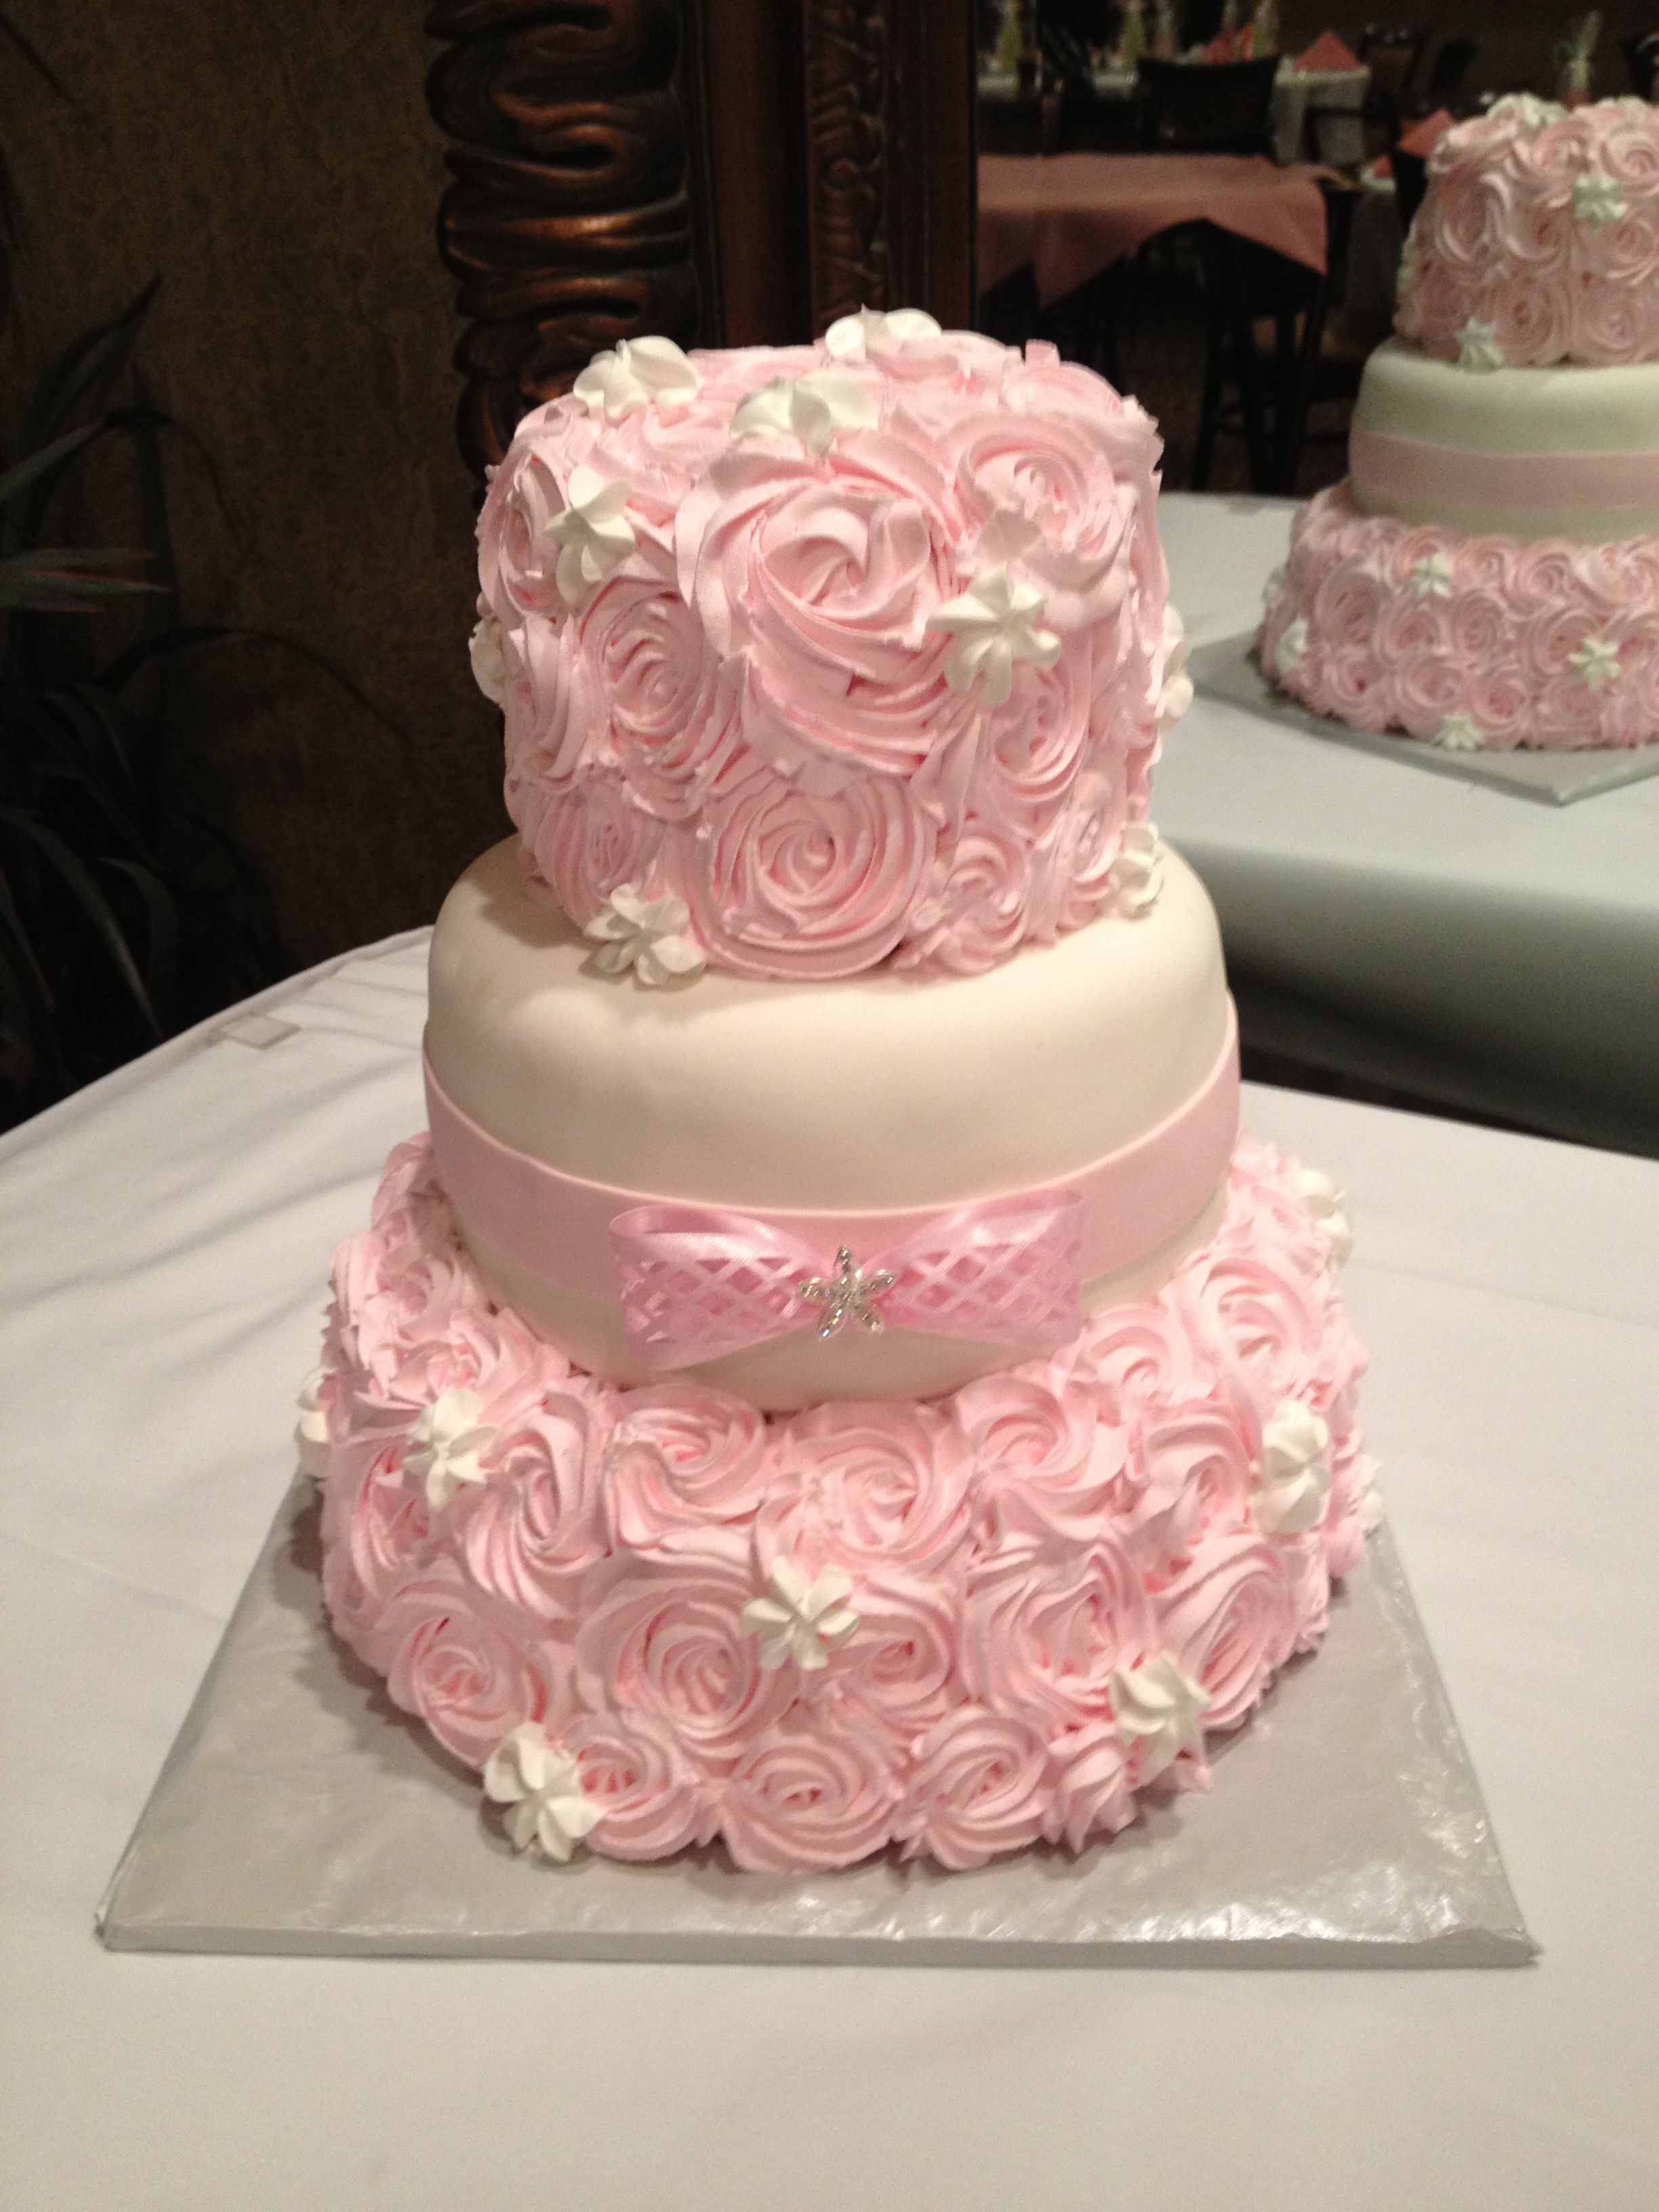 Three tiered pink and white rosette wedding cake by coleyscakes.com ...